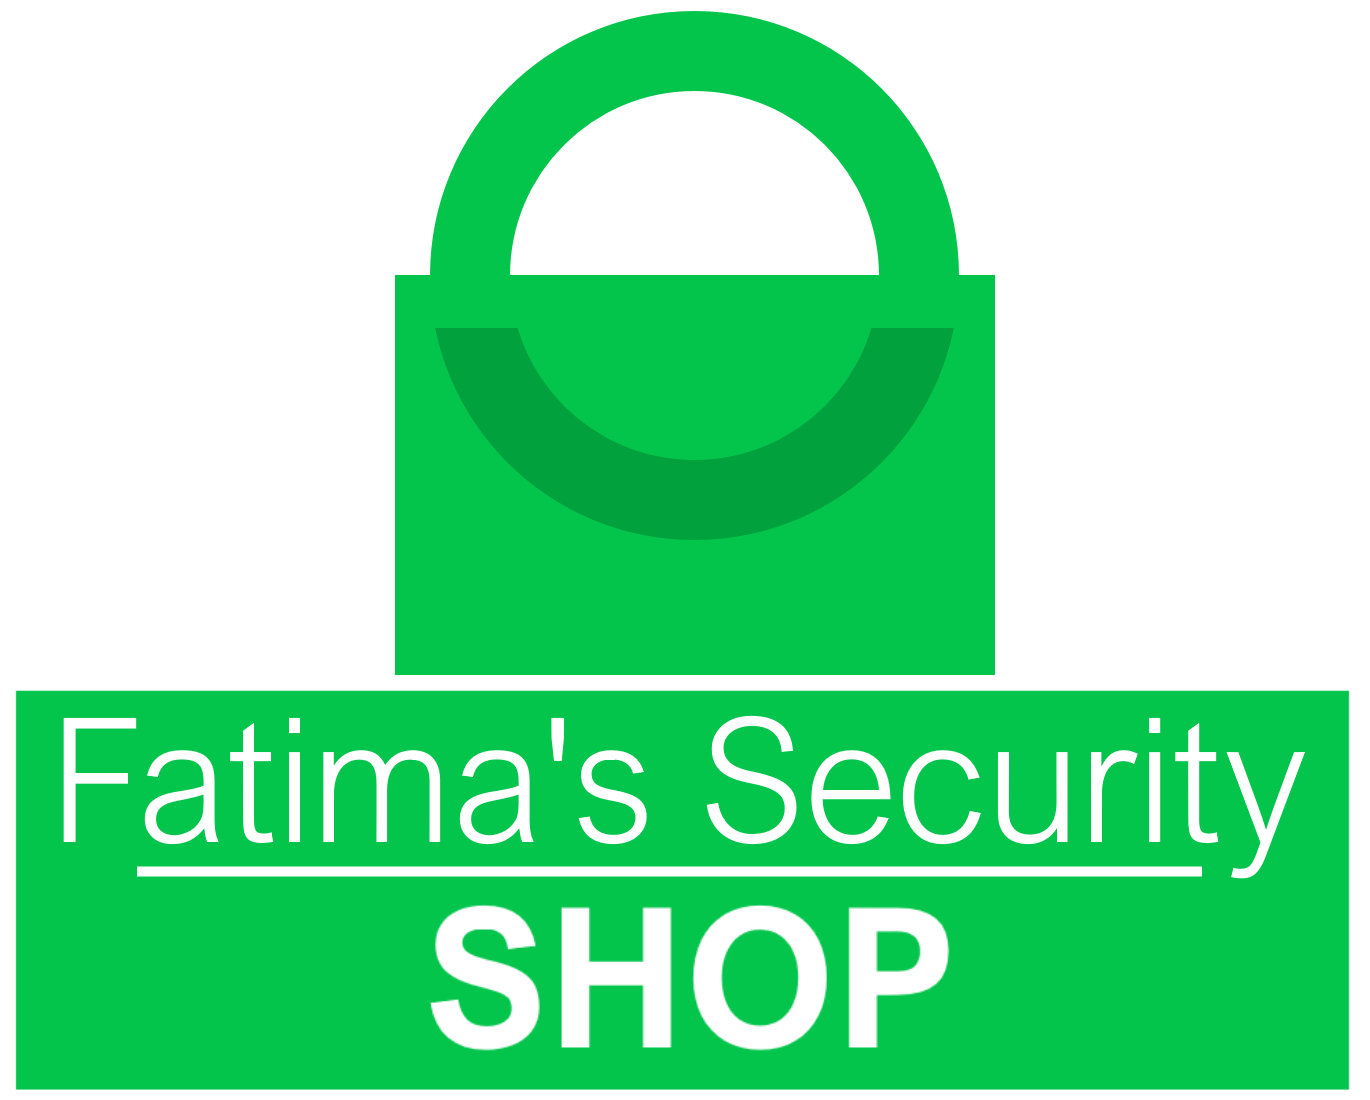 Fatima's Security Shop in Zimbabwe logo